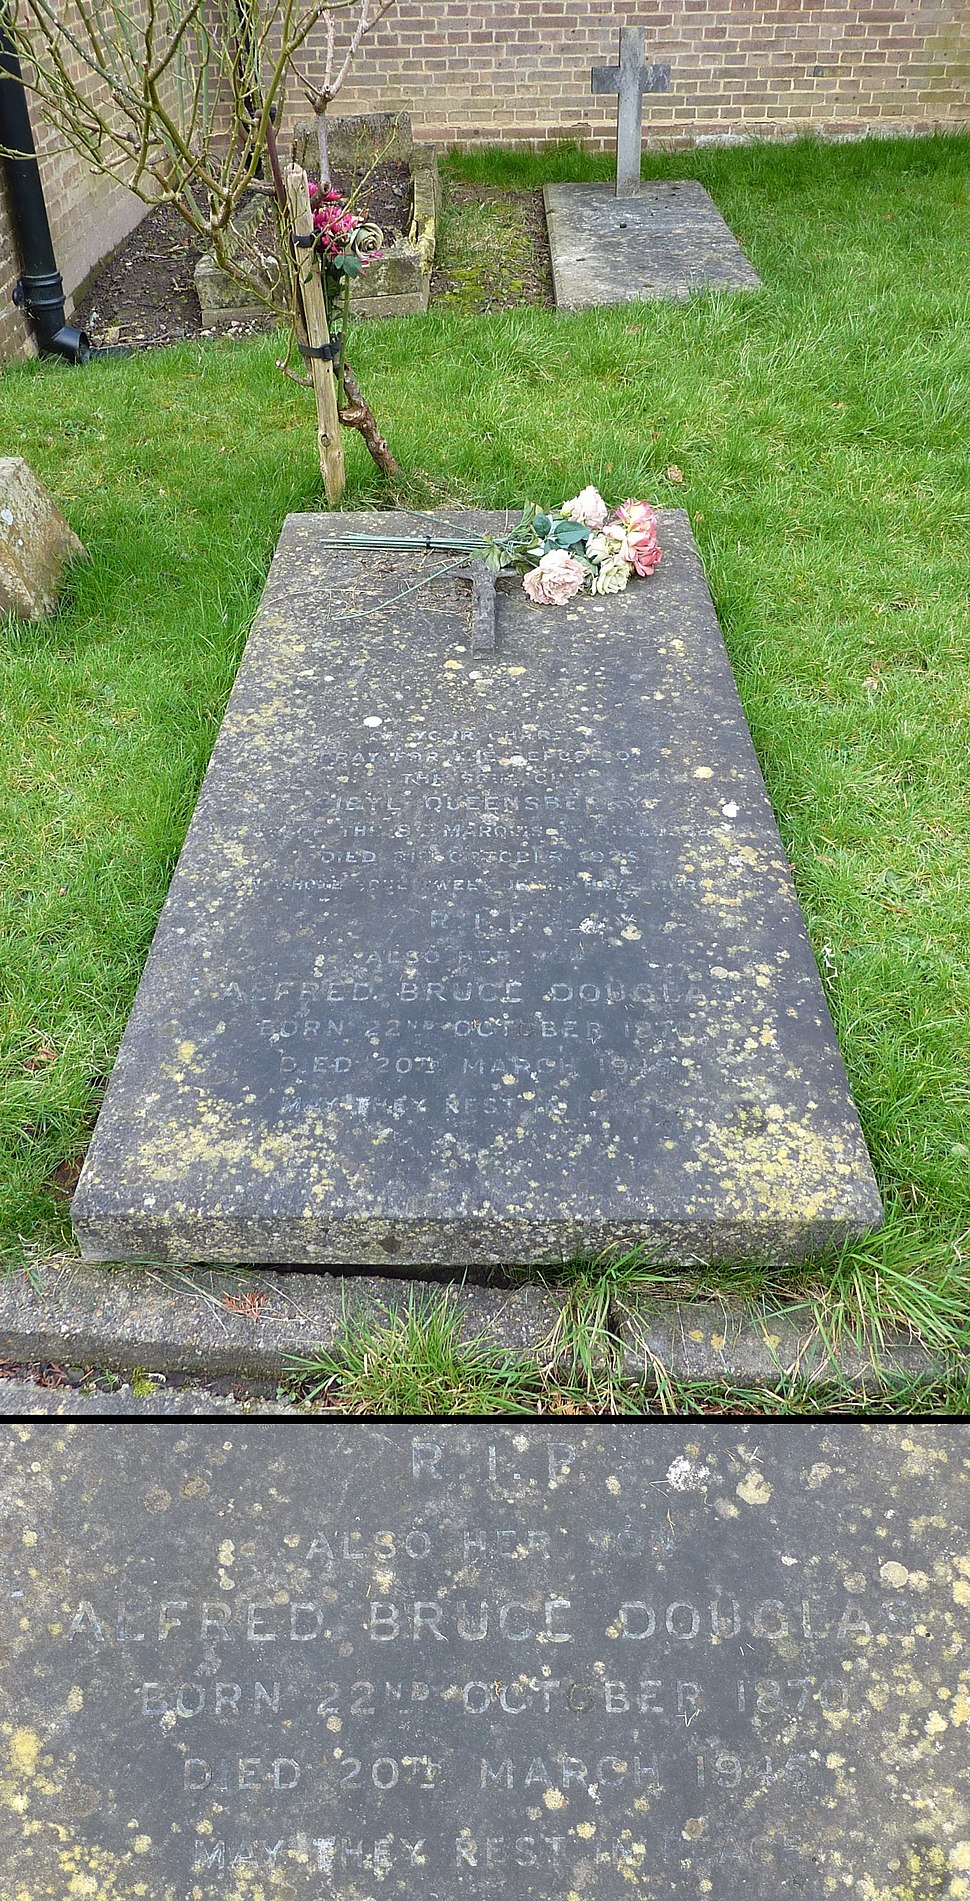 Lord Alfred Douglas grave